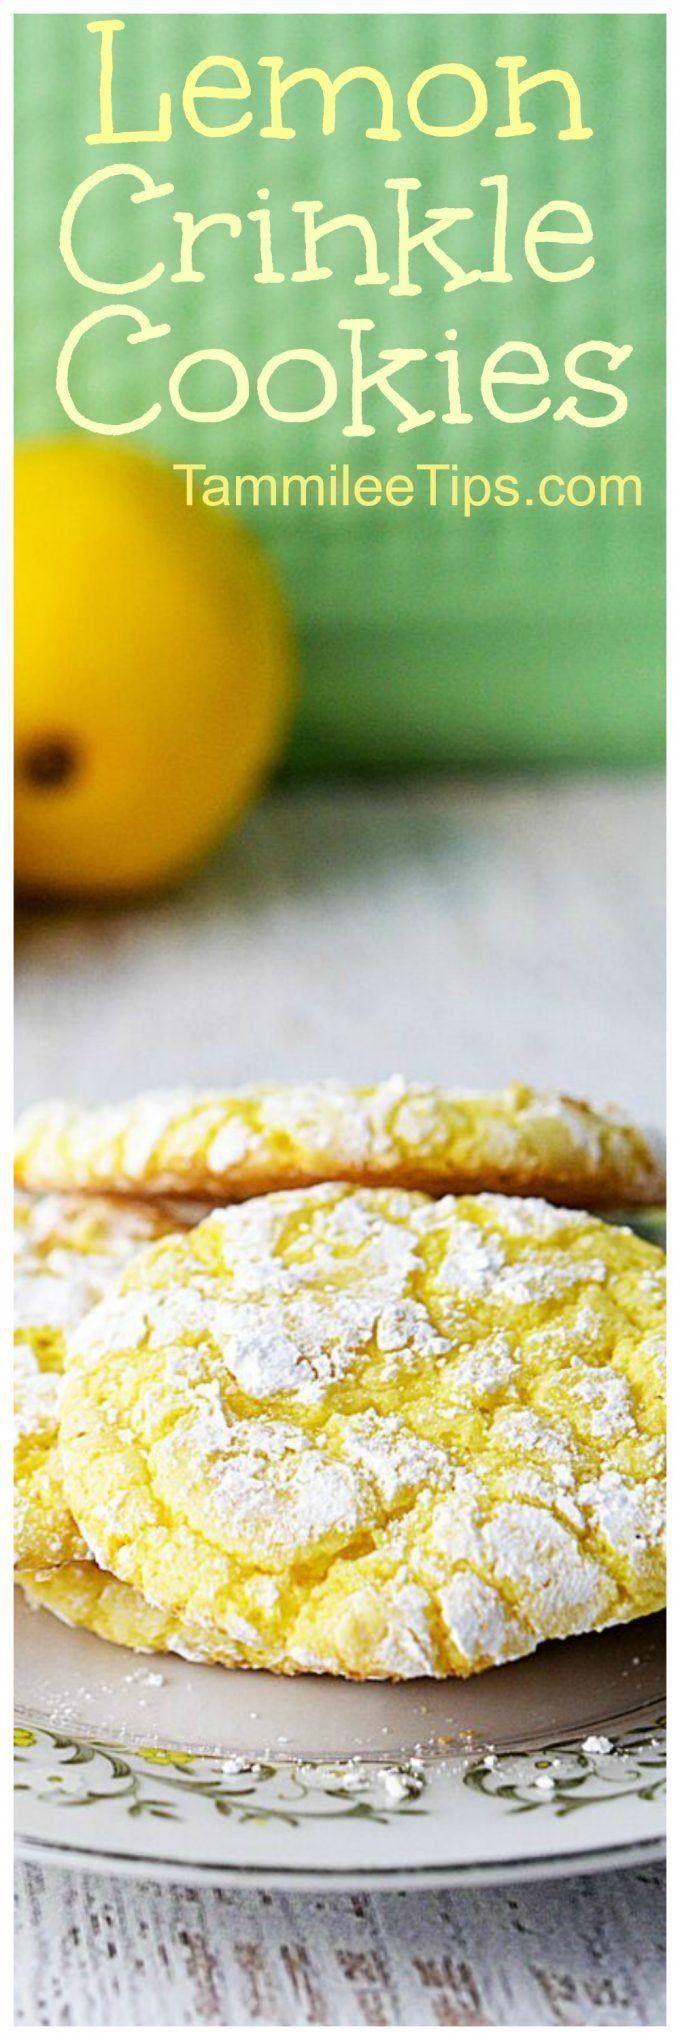 Easy Lemon Cookies from a cake mix that everyone will love. soft, chewy, easy perfect for Easter, Spring, birthday parties, school parties, or any day you want a sweet treat recipe. via @tammileetips